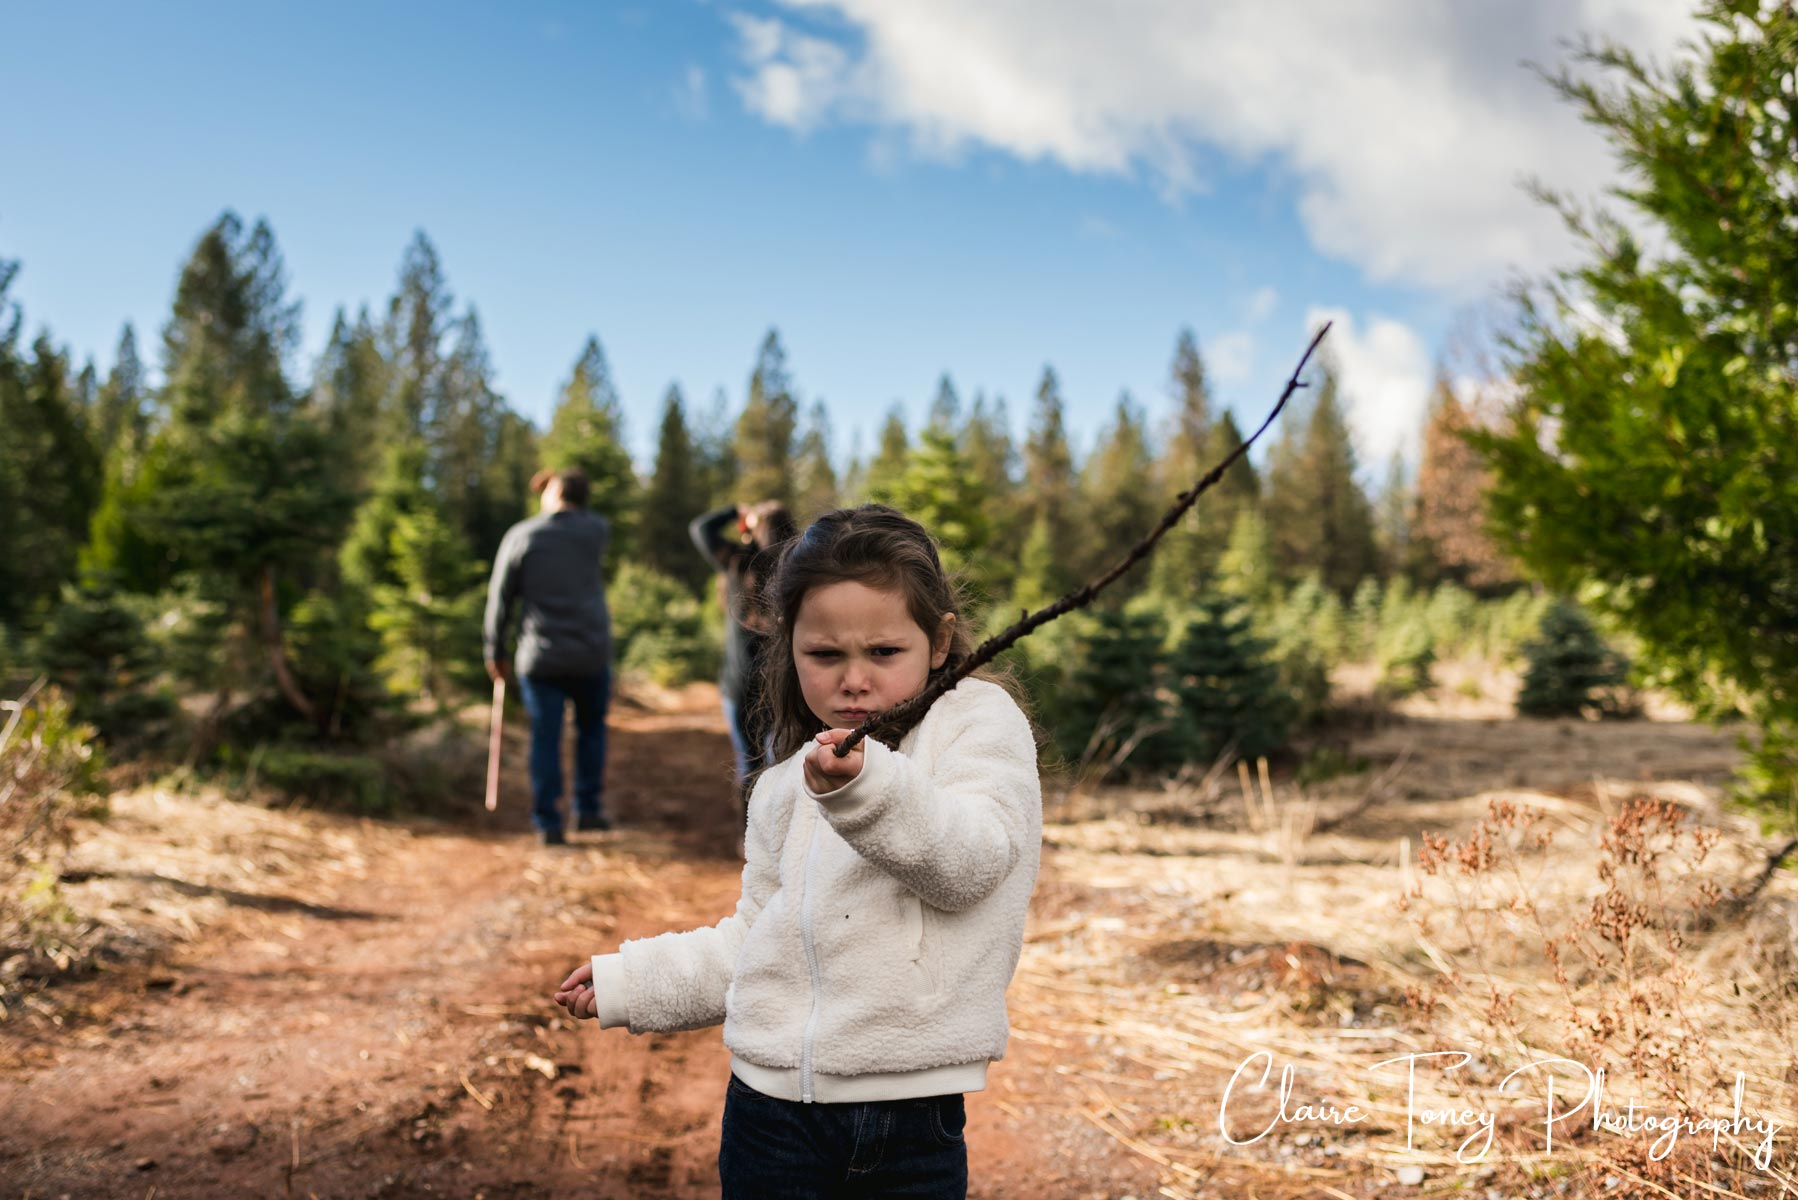 Little girl wearing a white sweater playing en garde with a stick at a tree farm